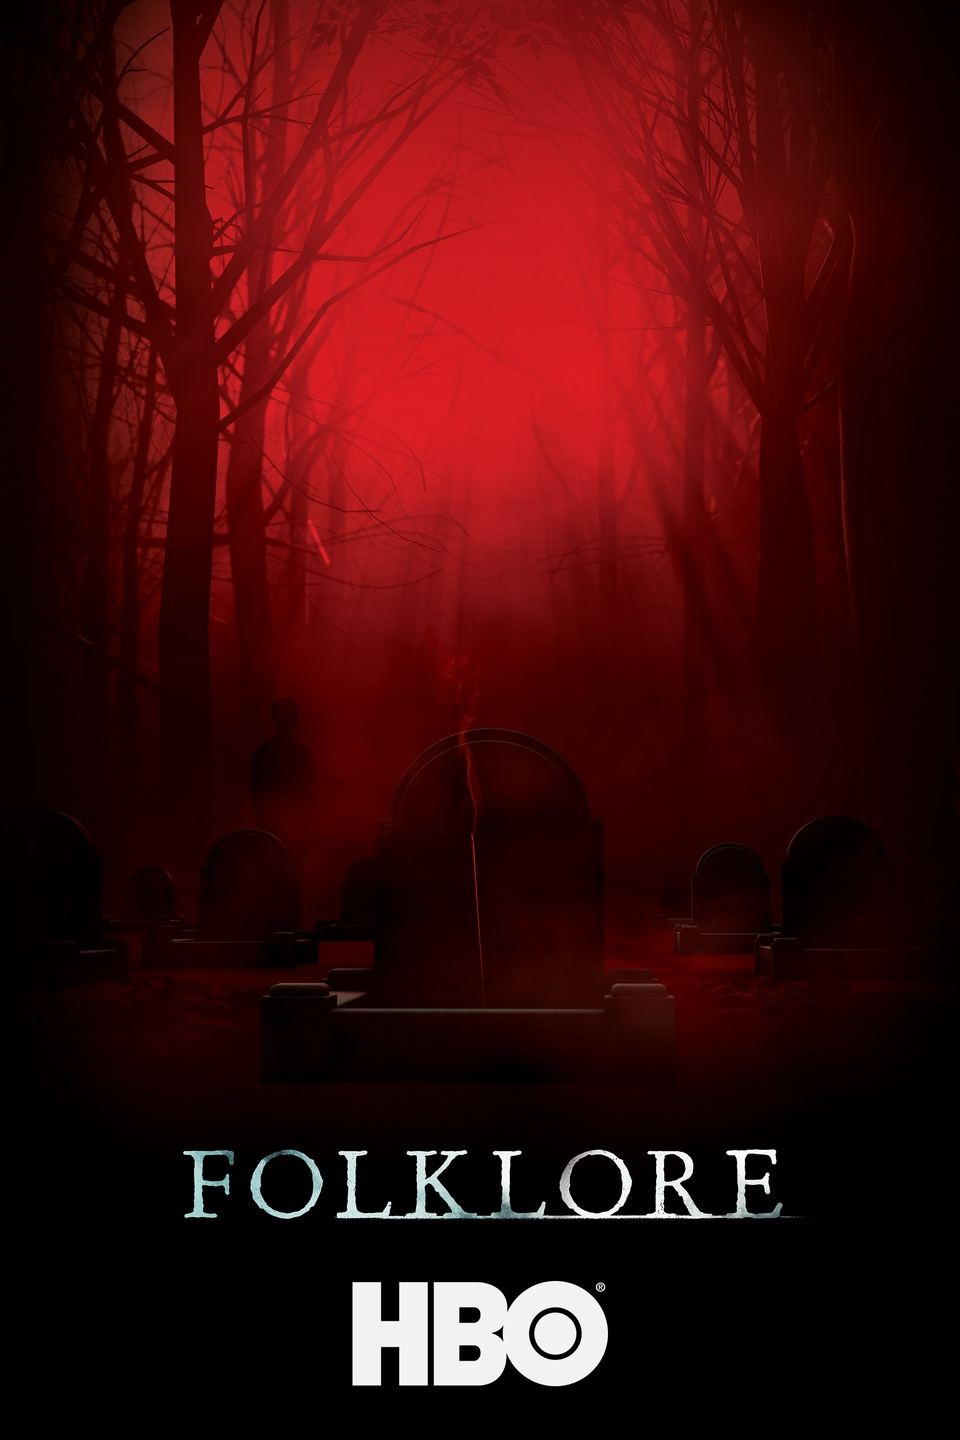 Folklore hbo